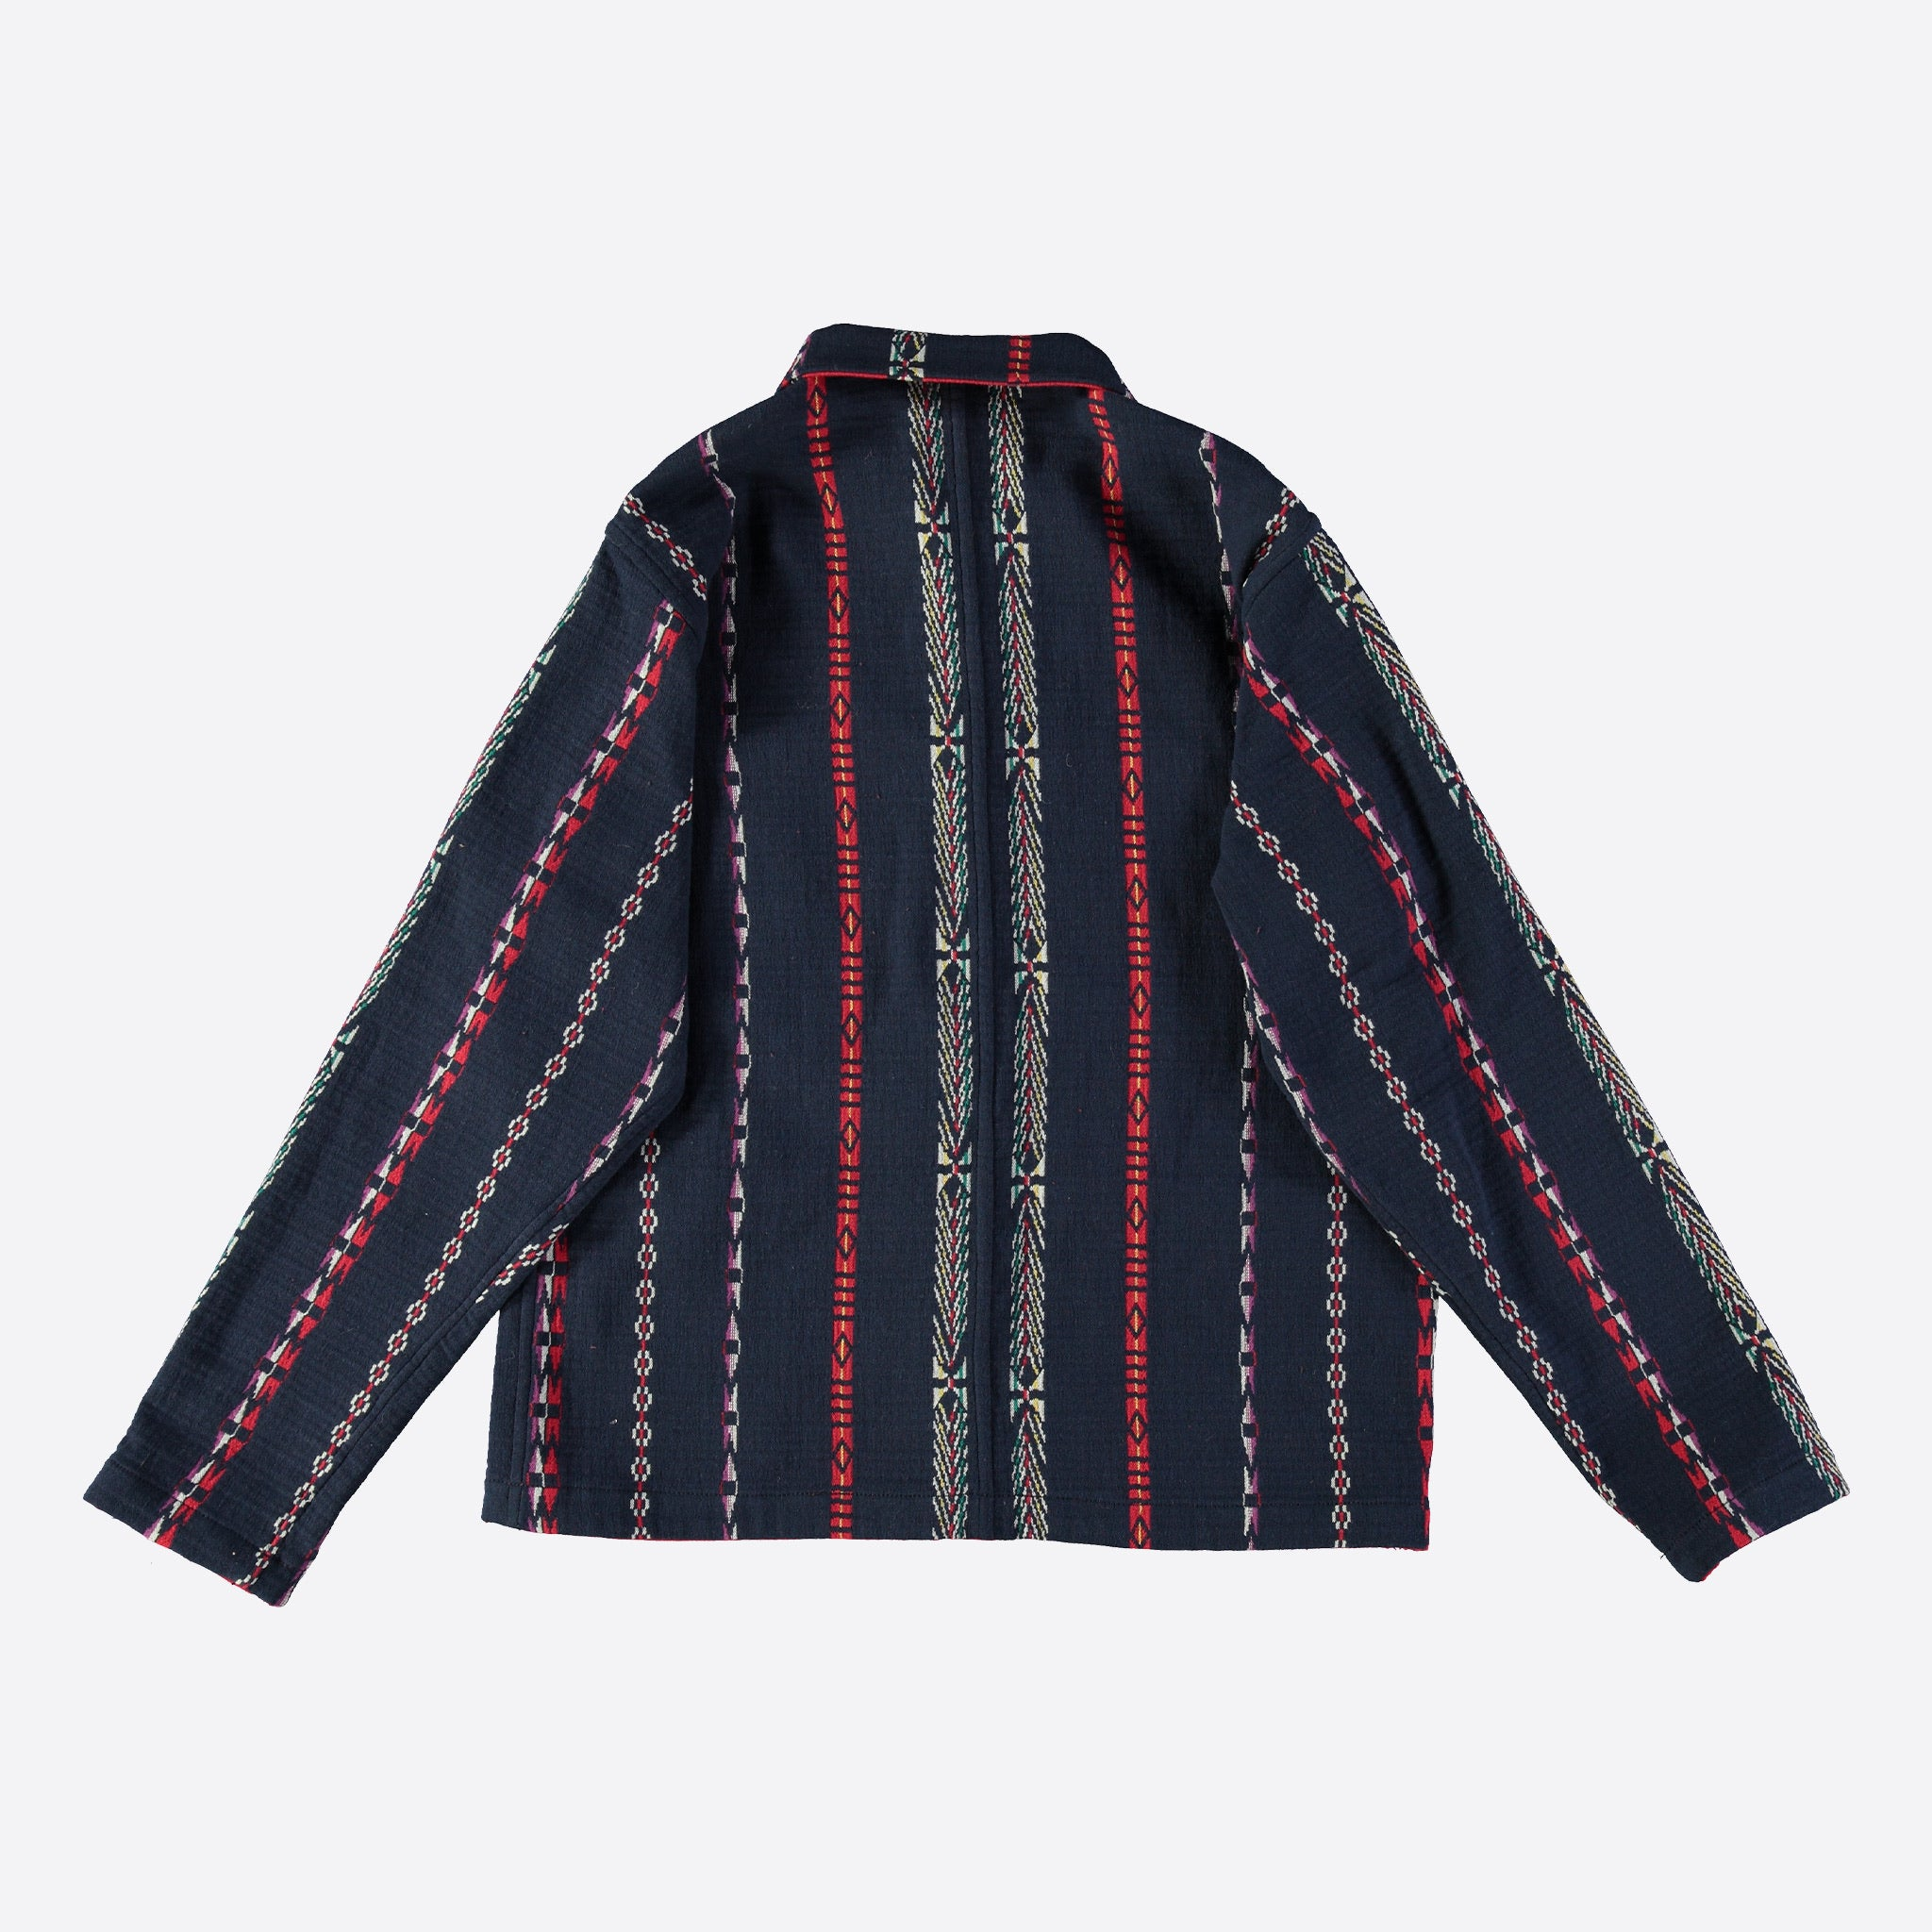 Eat Dust Malibu Reversible Jacket Piccu Jacquard in Navy